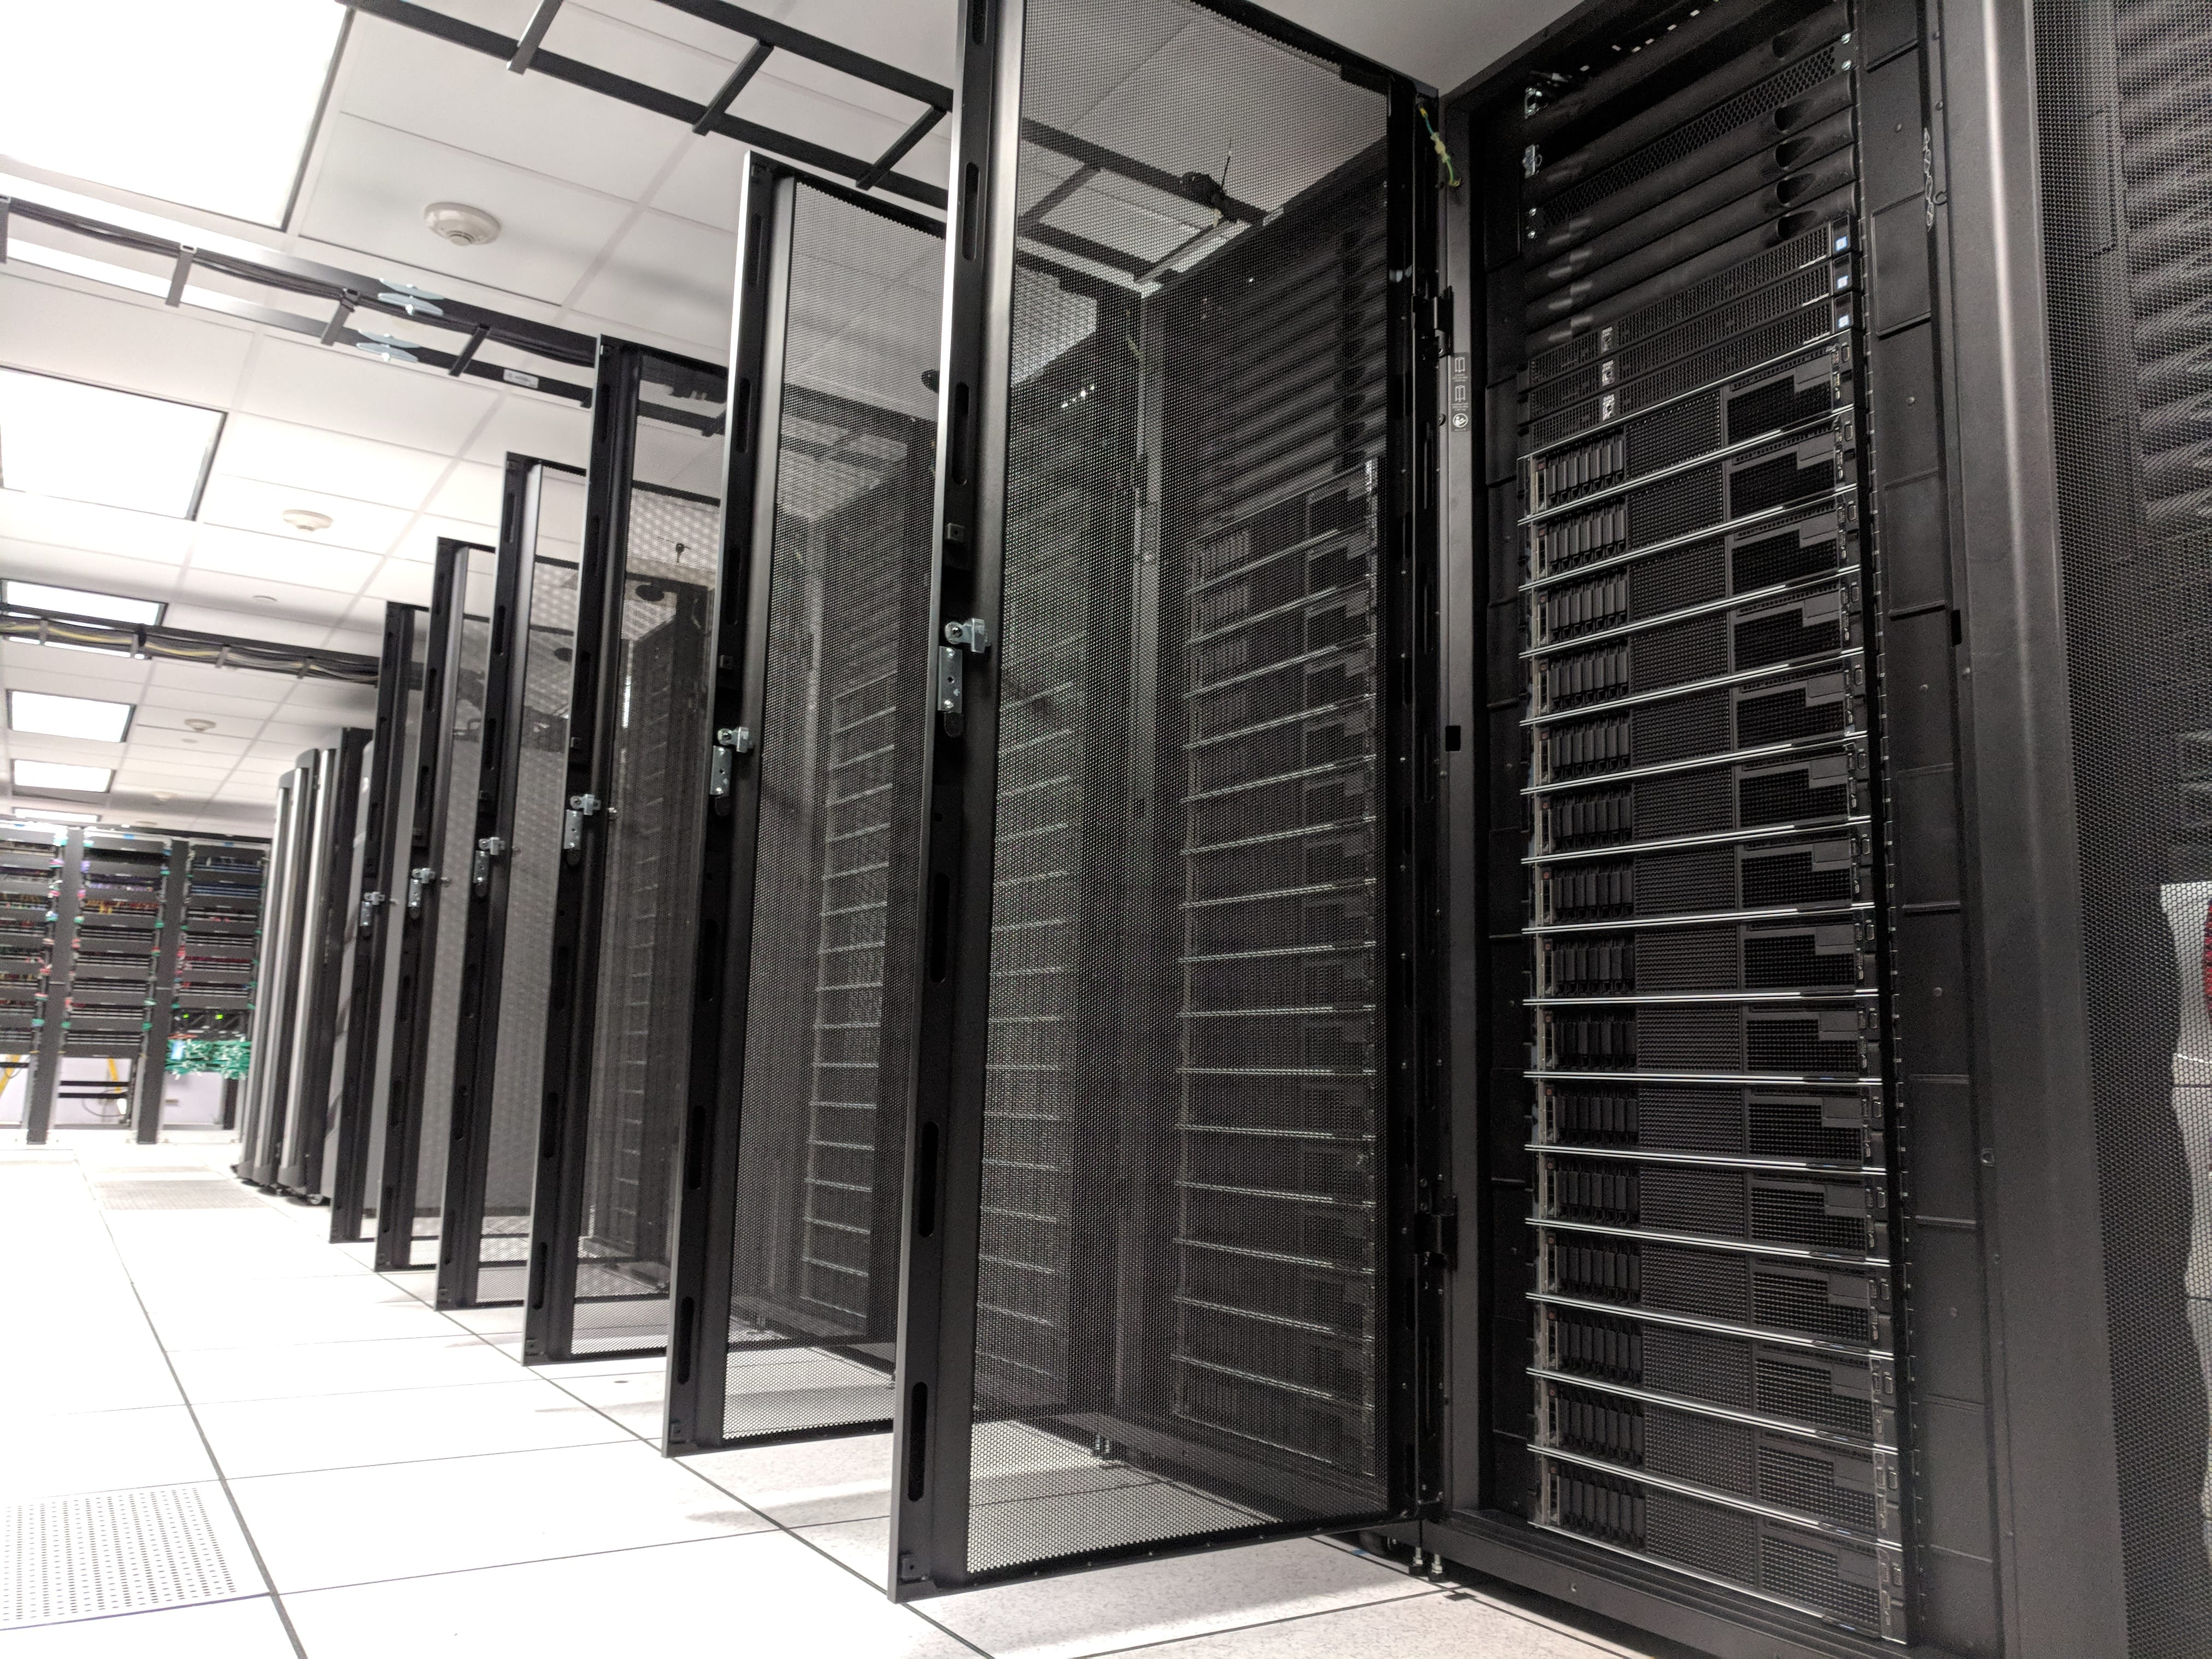 Ground level view of server racks with doors open showing servers in a row